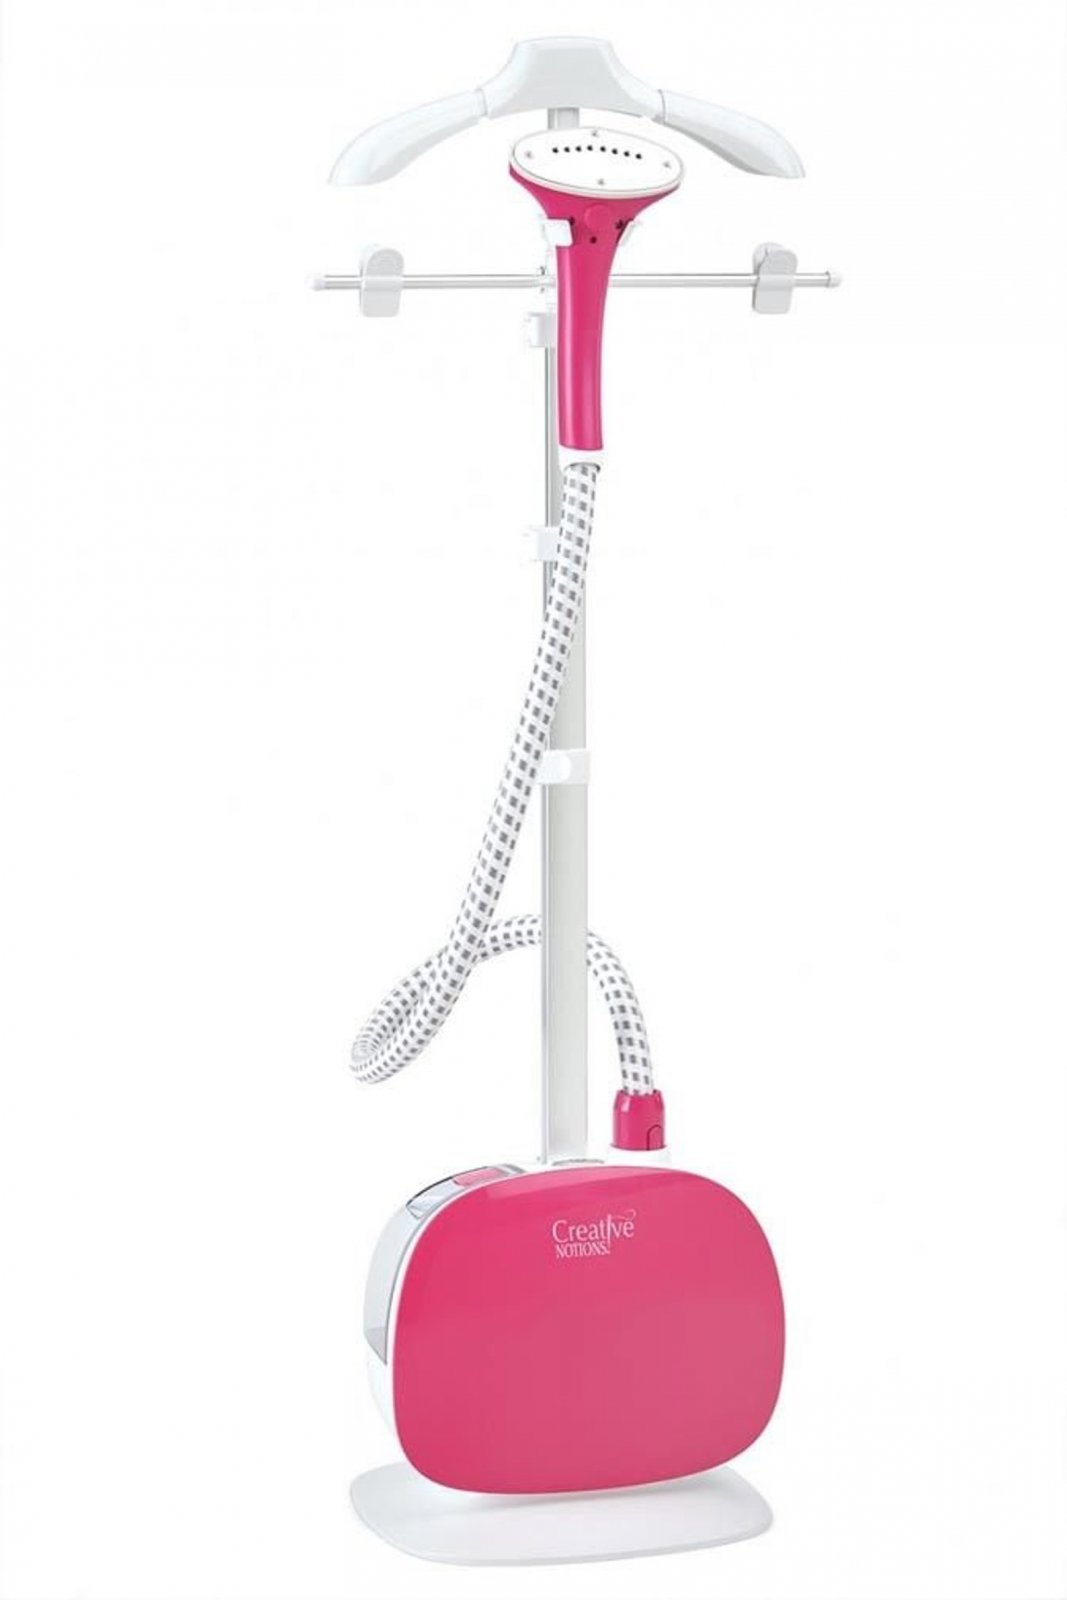 Creative Notions Personal Garment Steamer